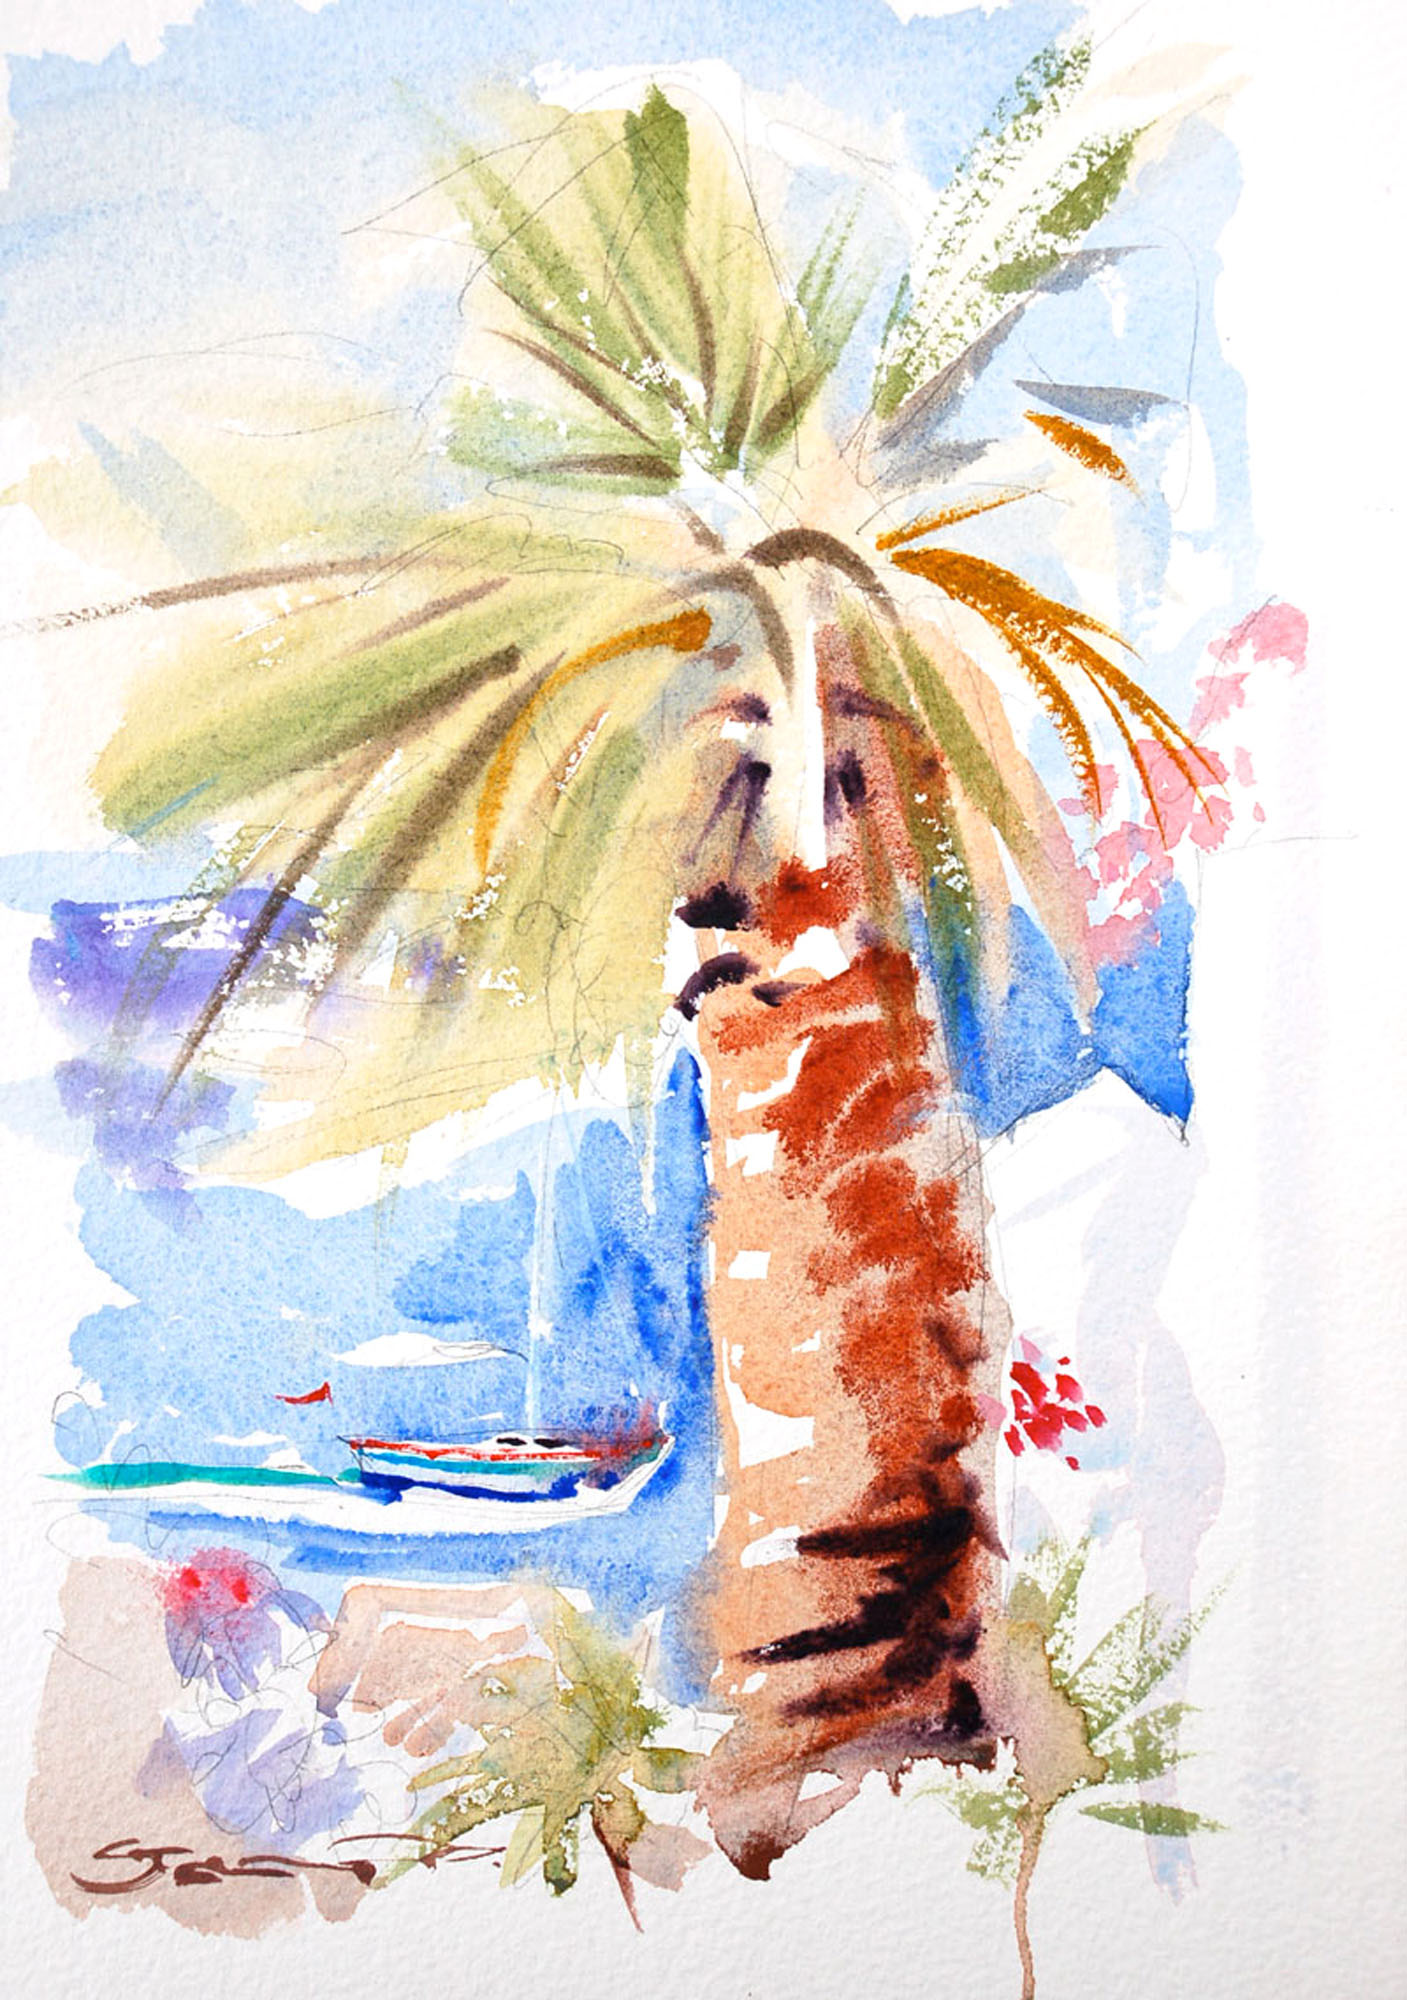 Island palm watercolour painting Hydra Greece by artist Steve PP.